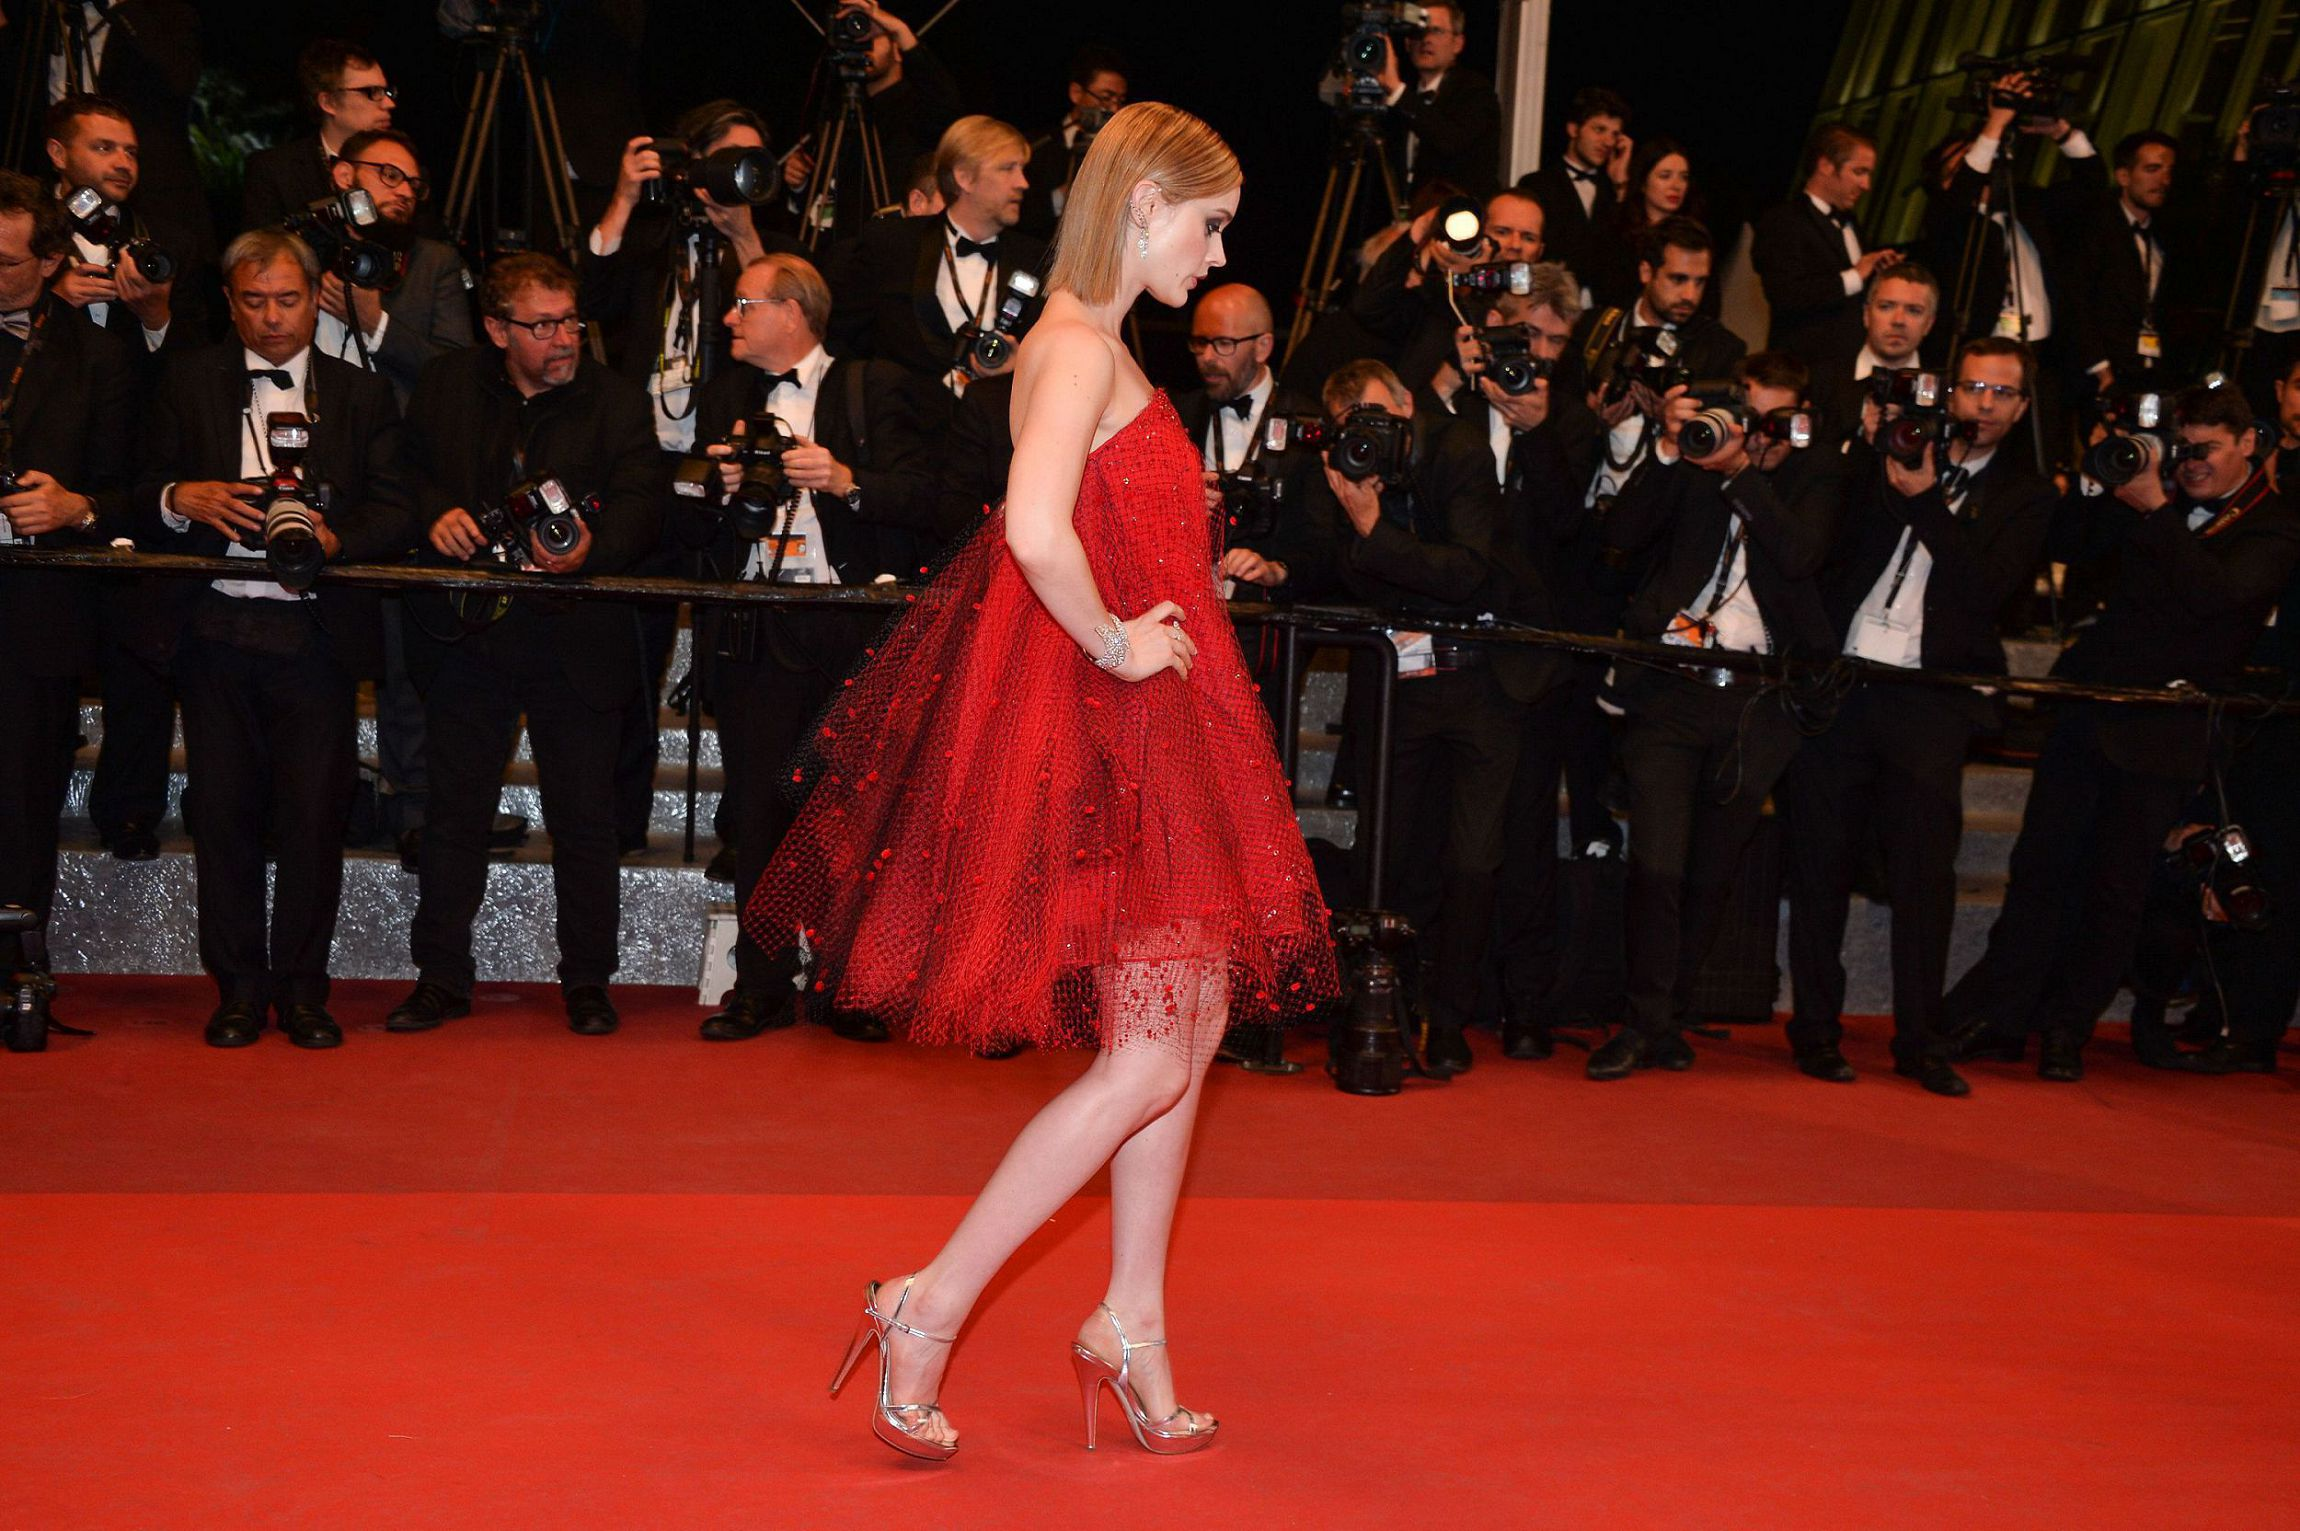 Cannes The Neon Demon Screening 2